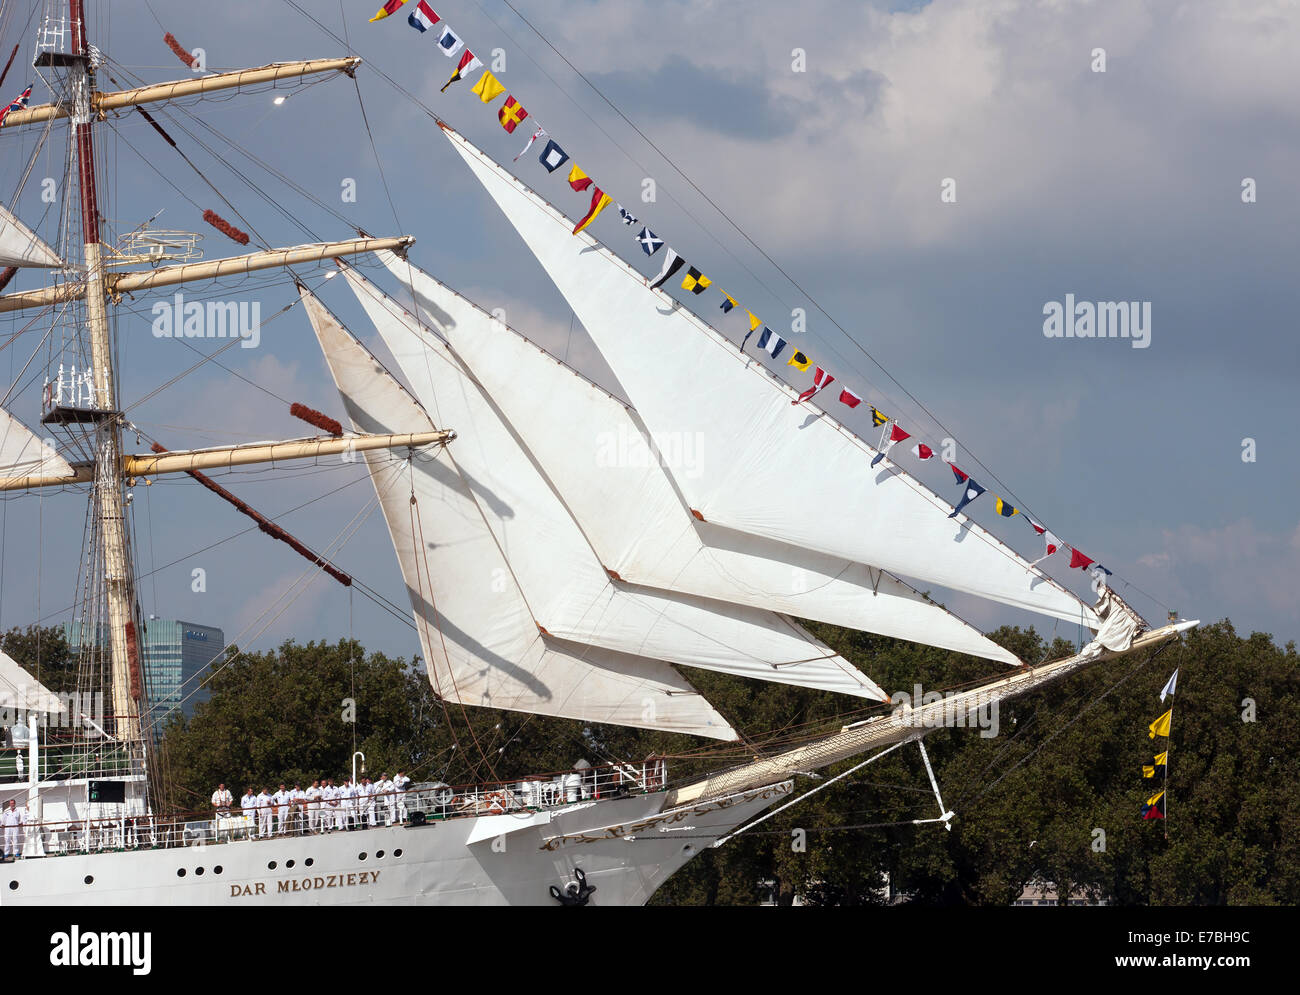 A Close-up image of the Bow of the Dar Mlodziez,  leading the Parade of Sail, during the Tall Ships Festival, Greenwich - Stock Image